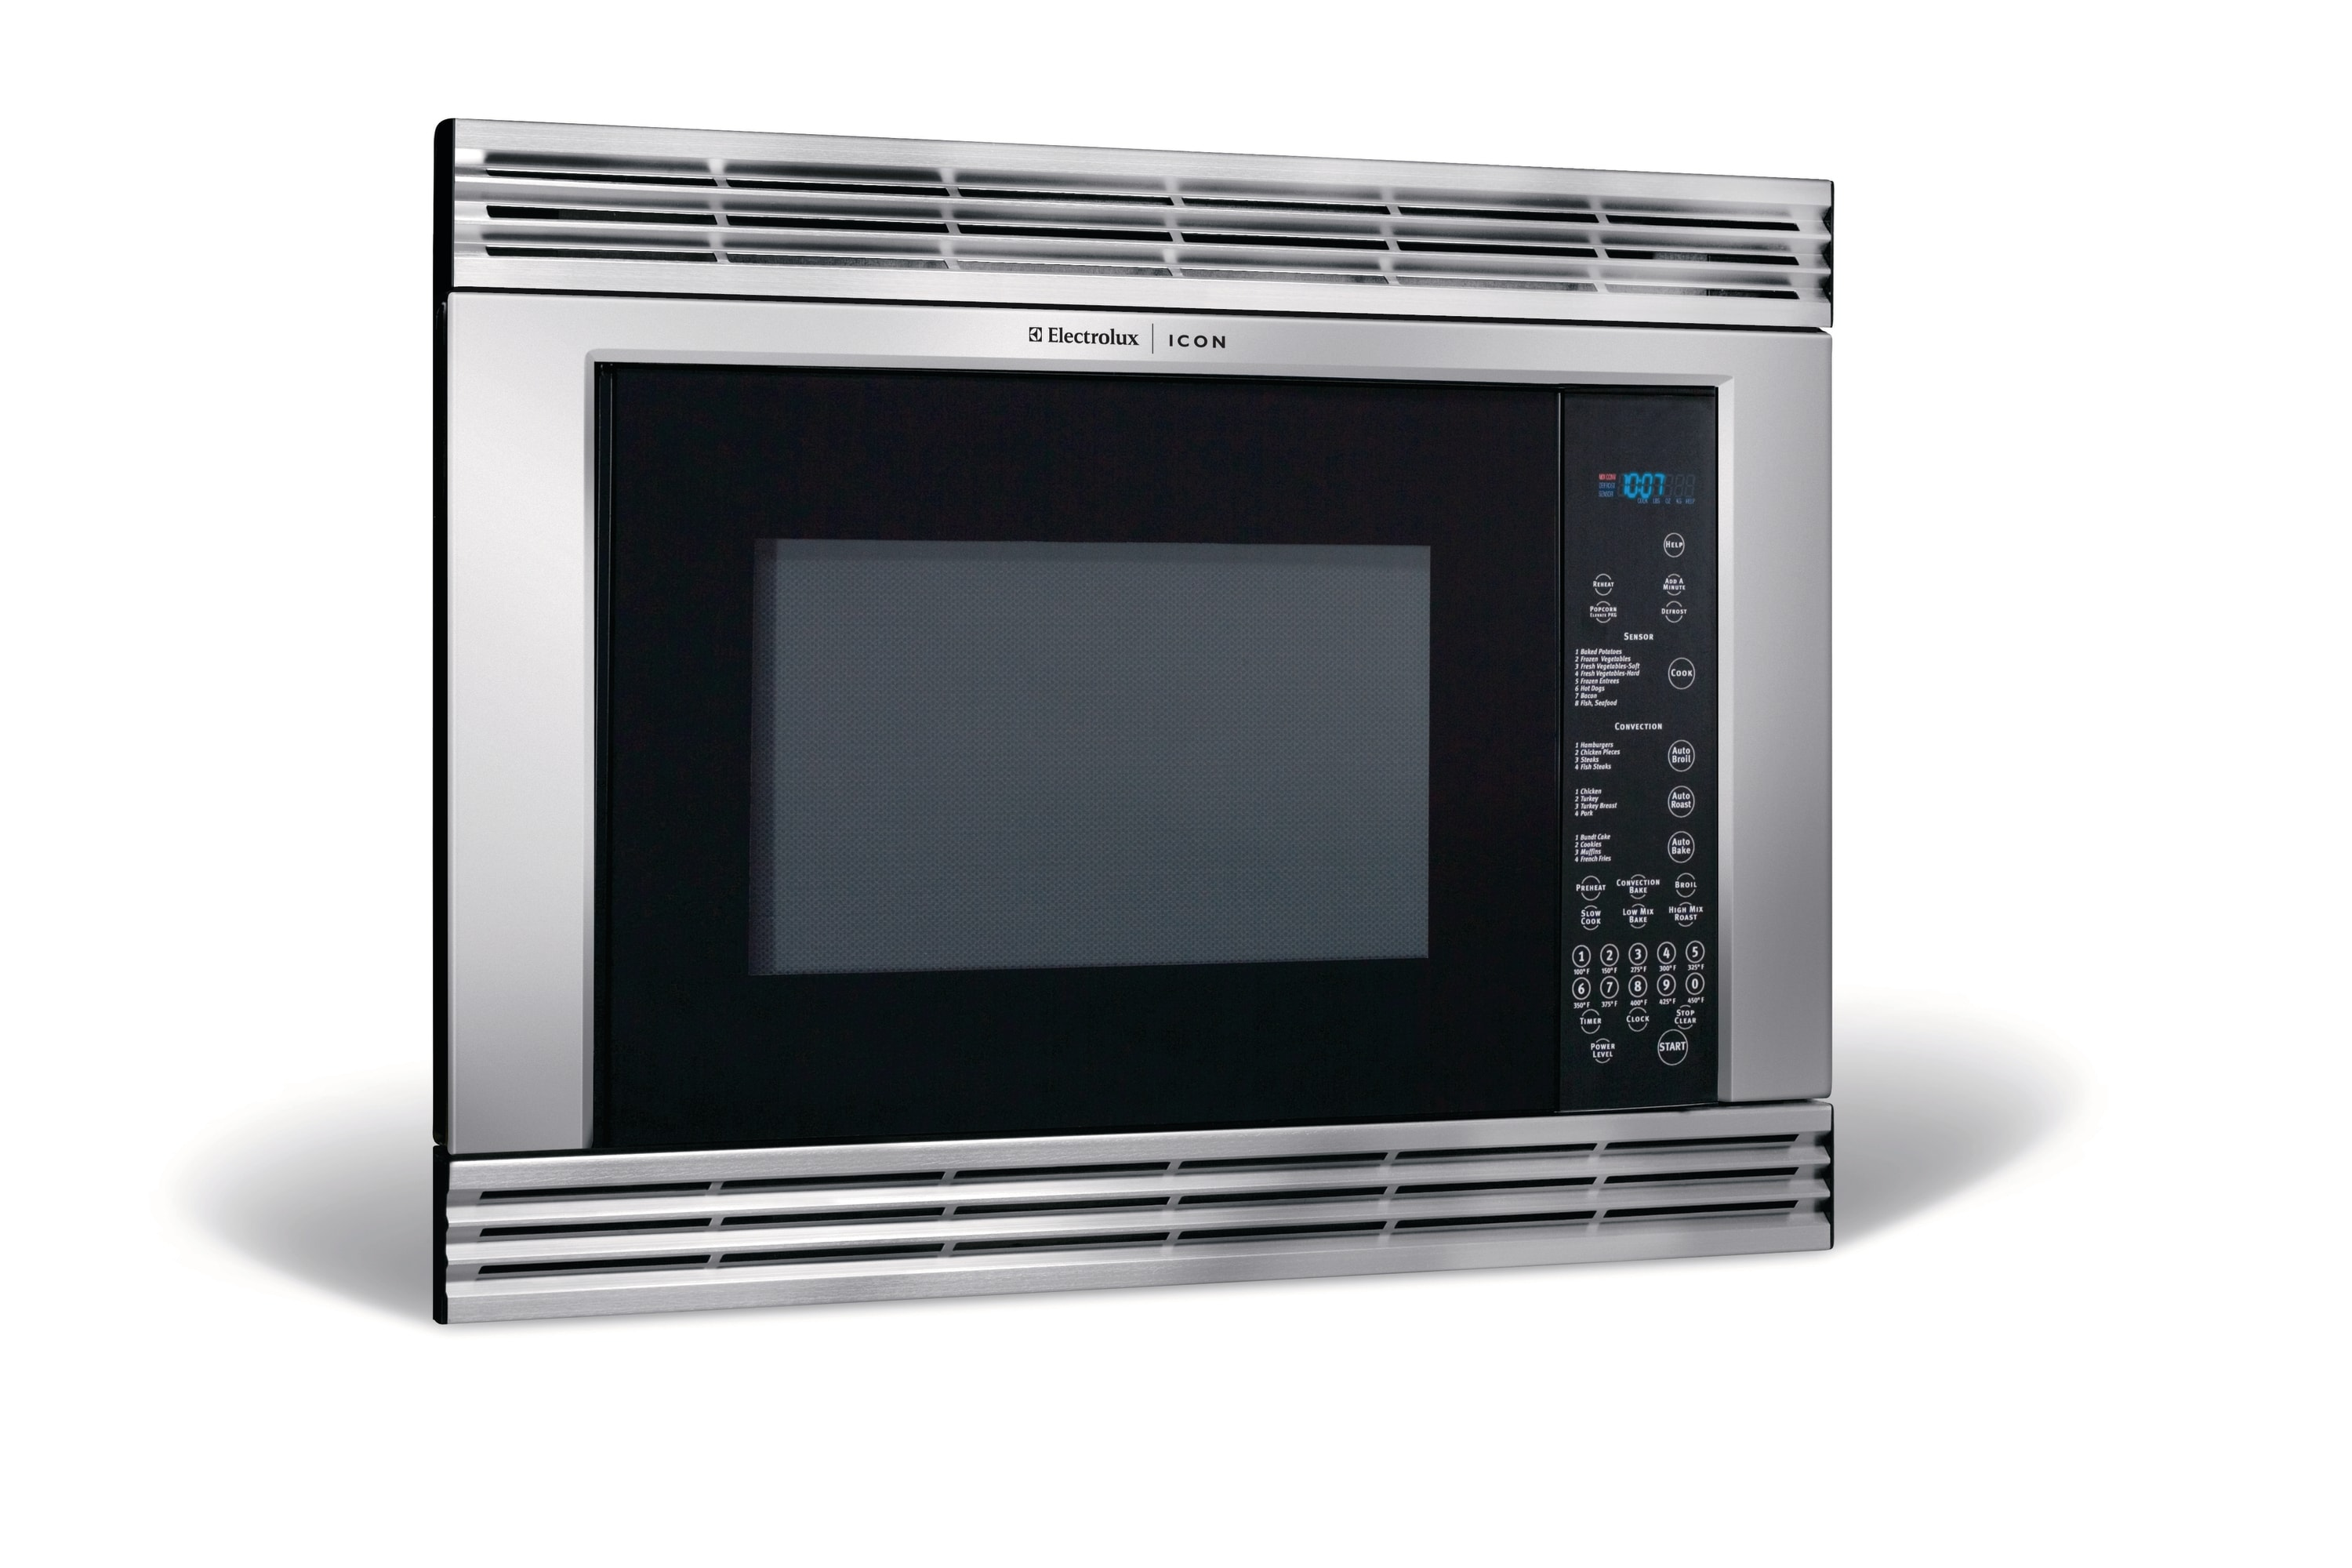 Model: E30MO65GSS | Electrolux ICON Electrolux ICON® Built-In Microwave with Side-Swing Door